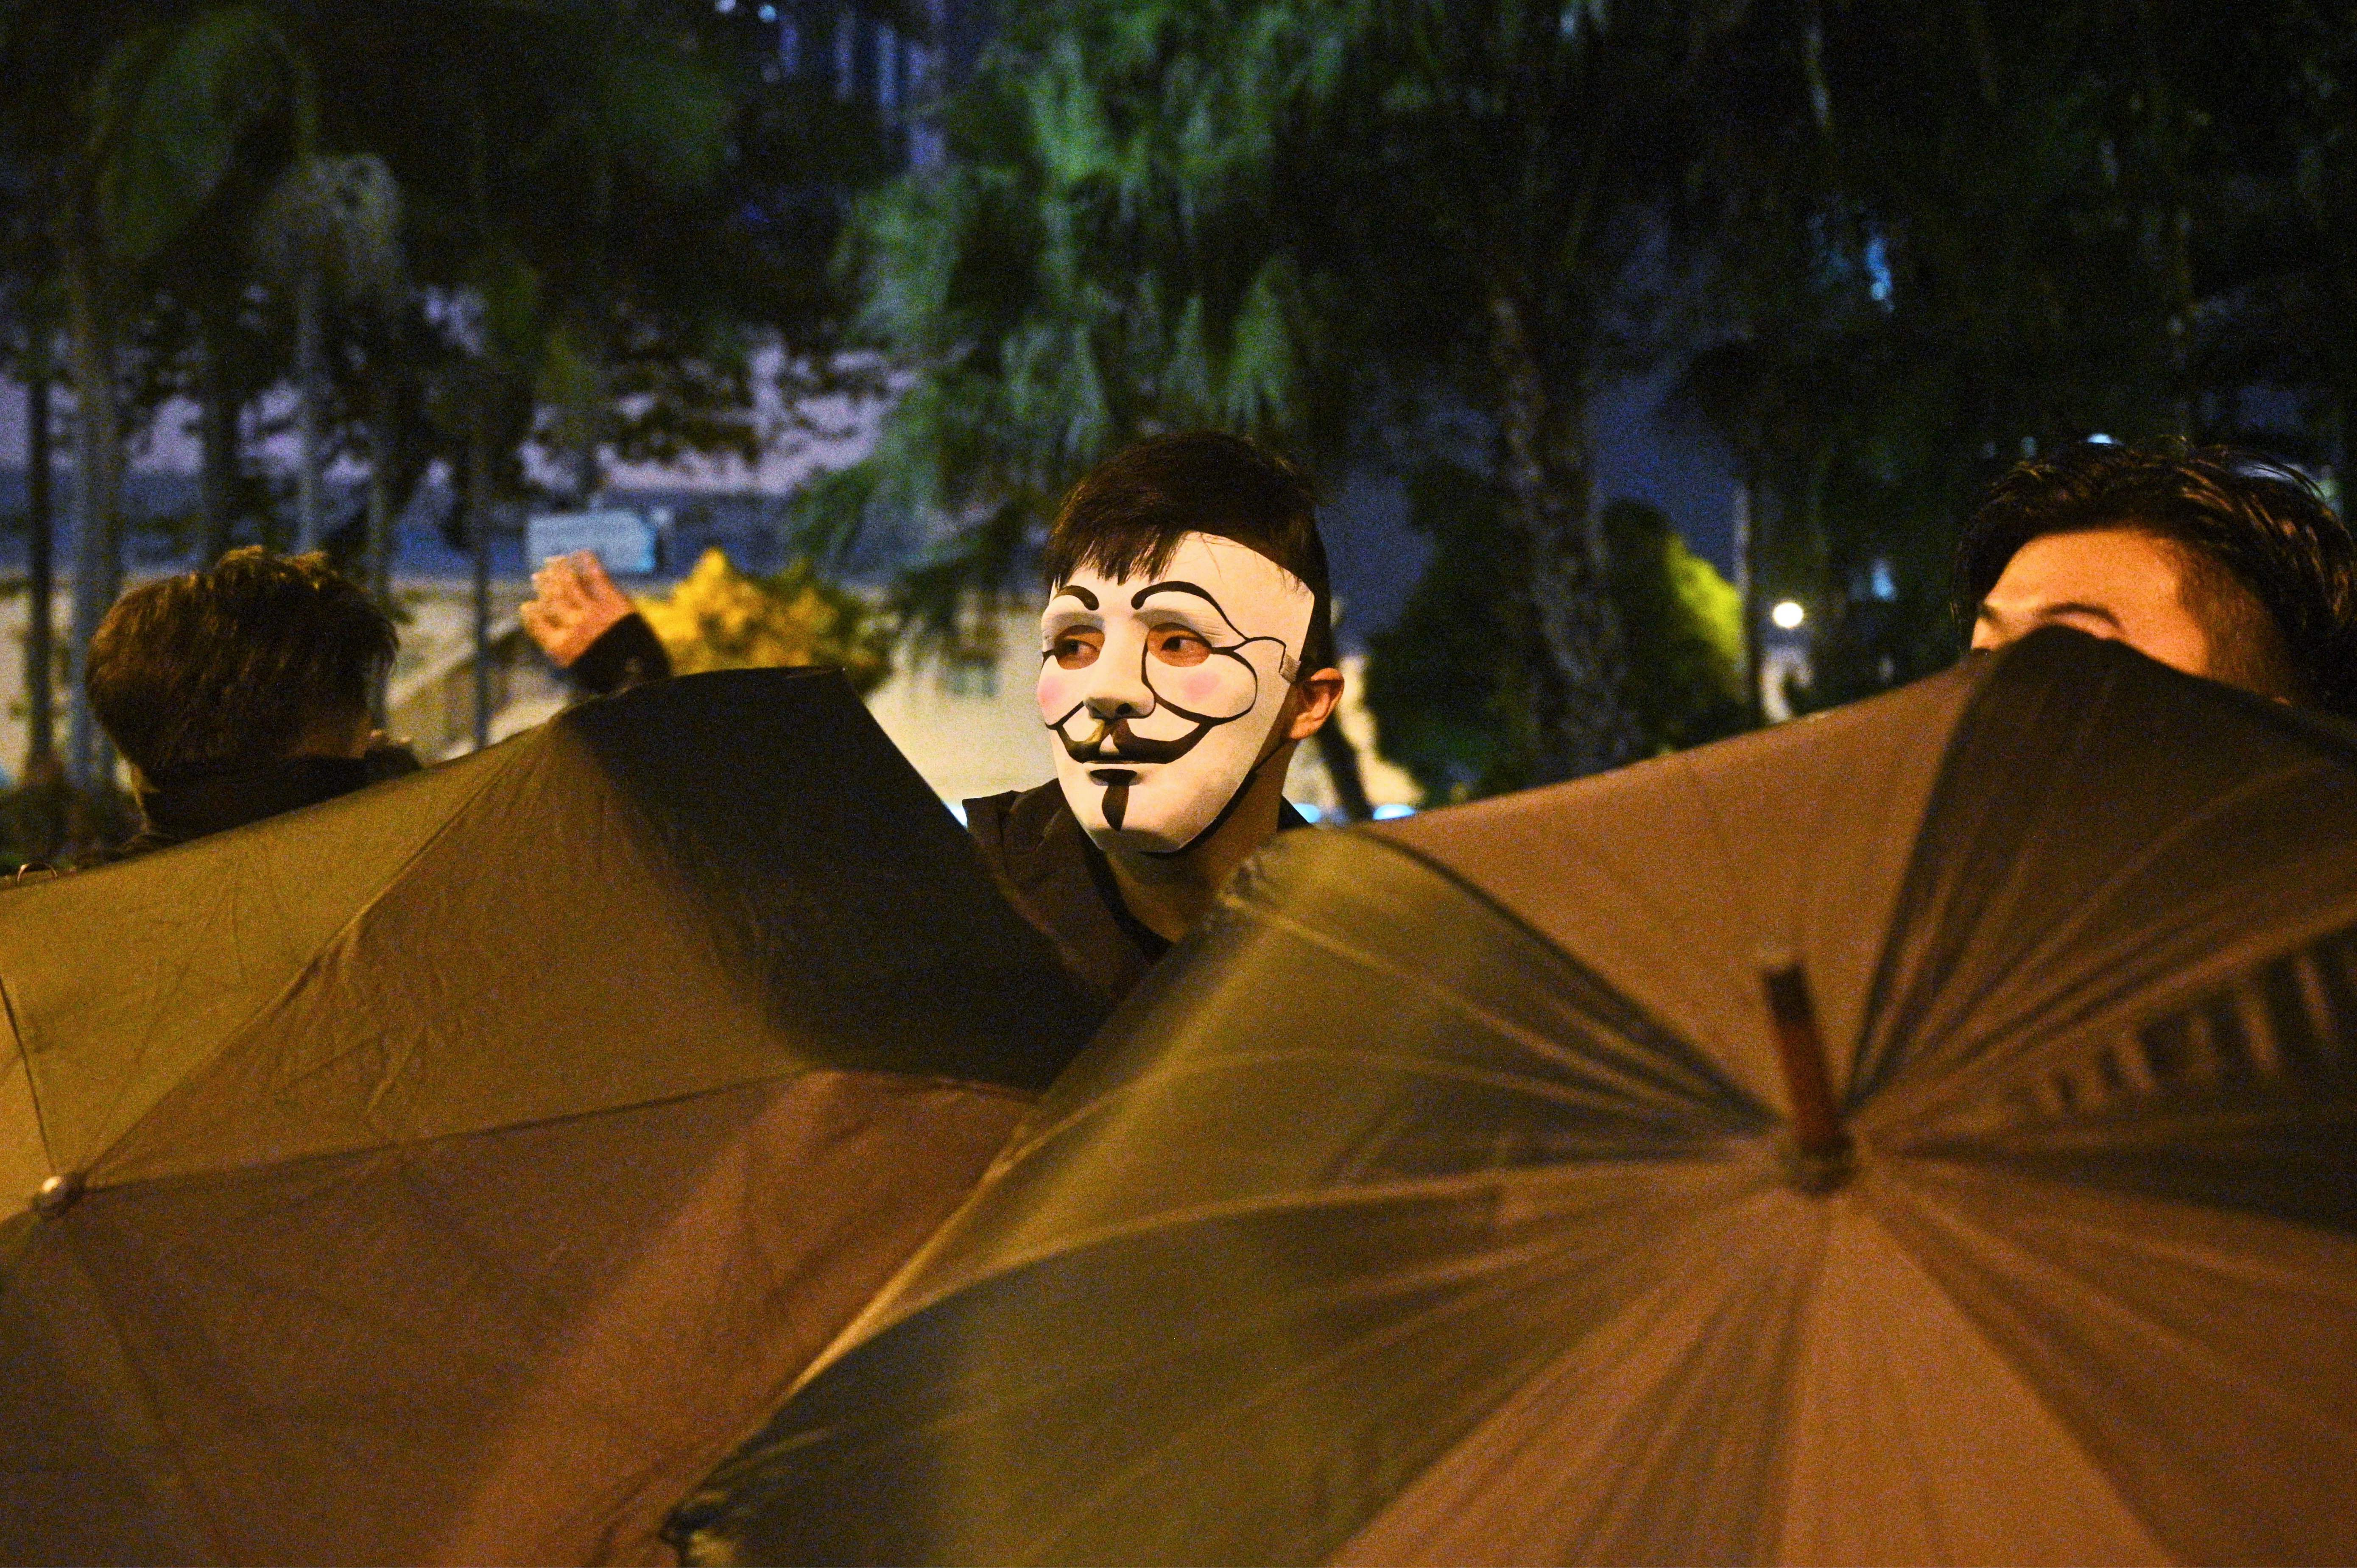 Hong Kong S Mask Ban Pits Anonymity Against The Surveillance State